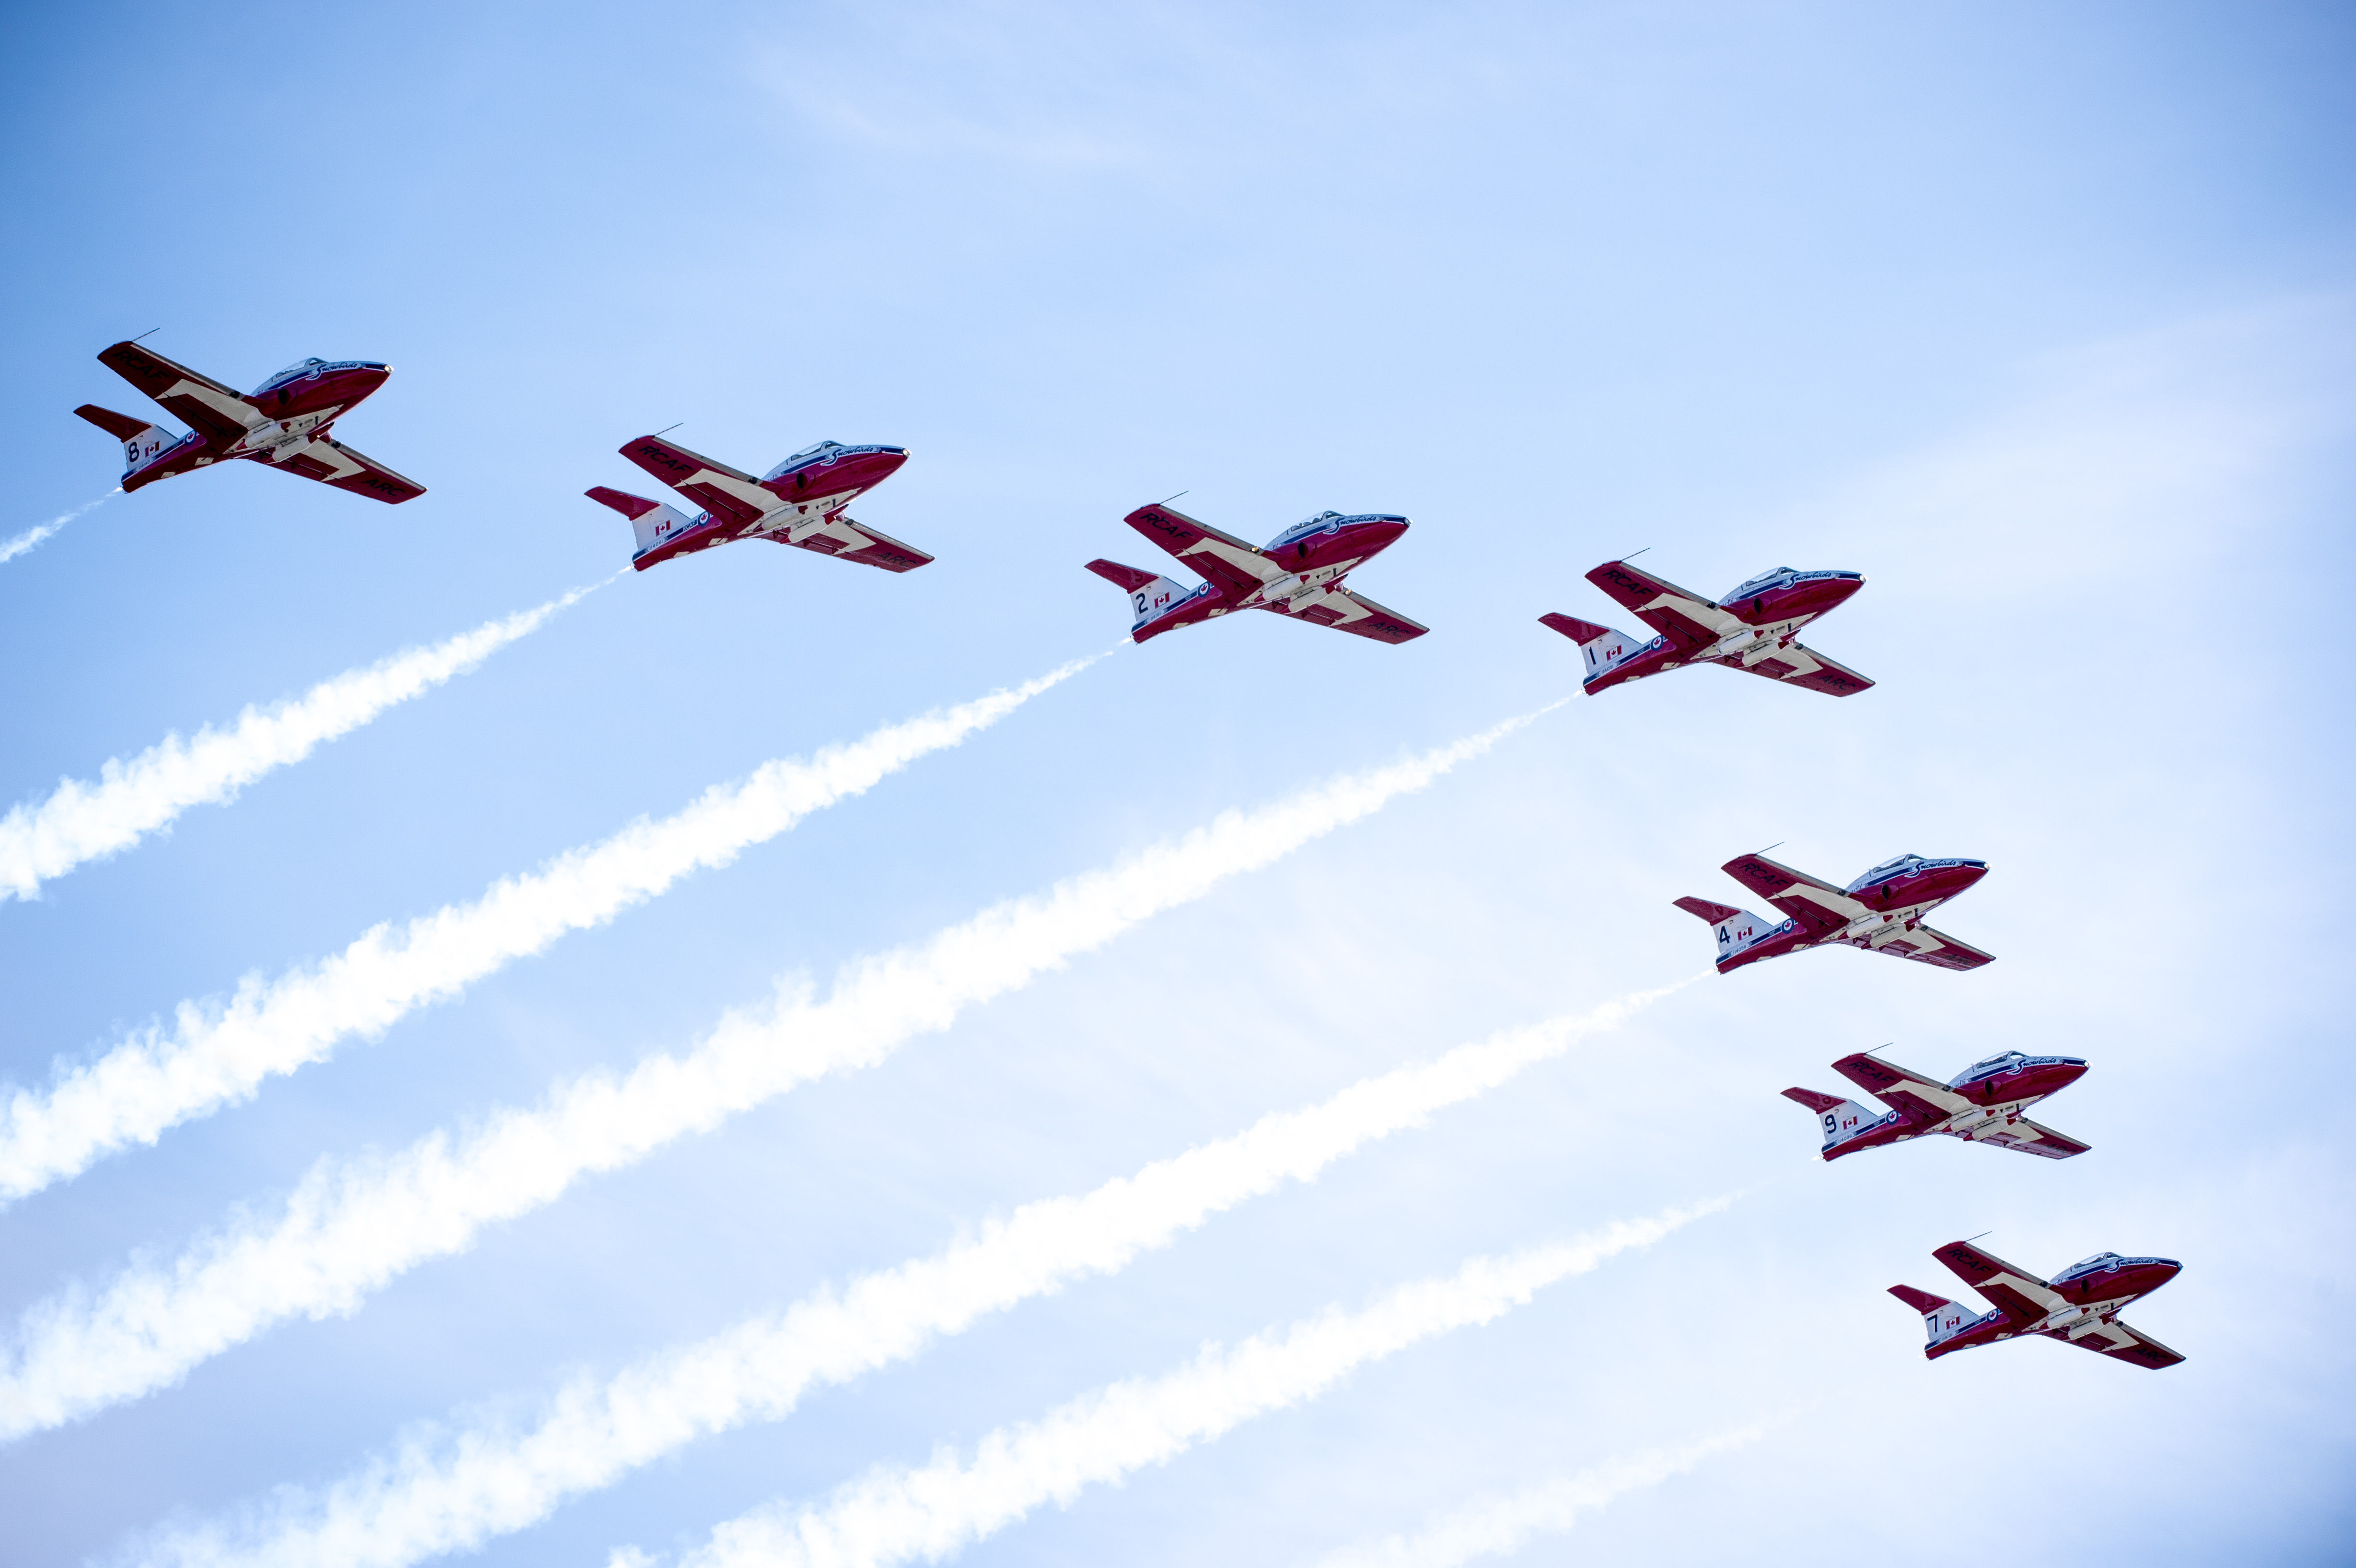 Seven red and white jet aircraft fly in formation.